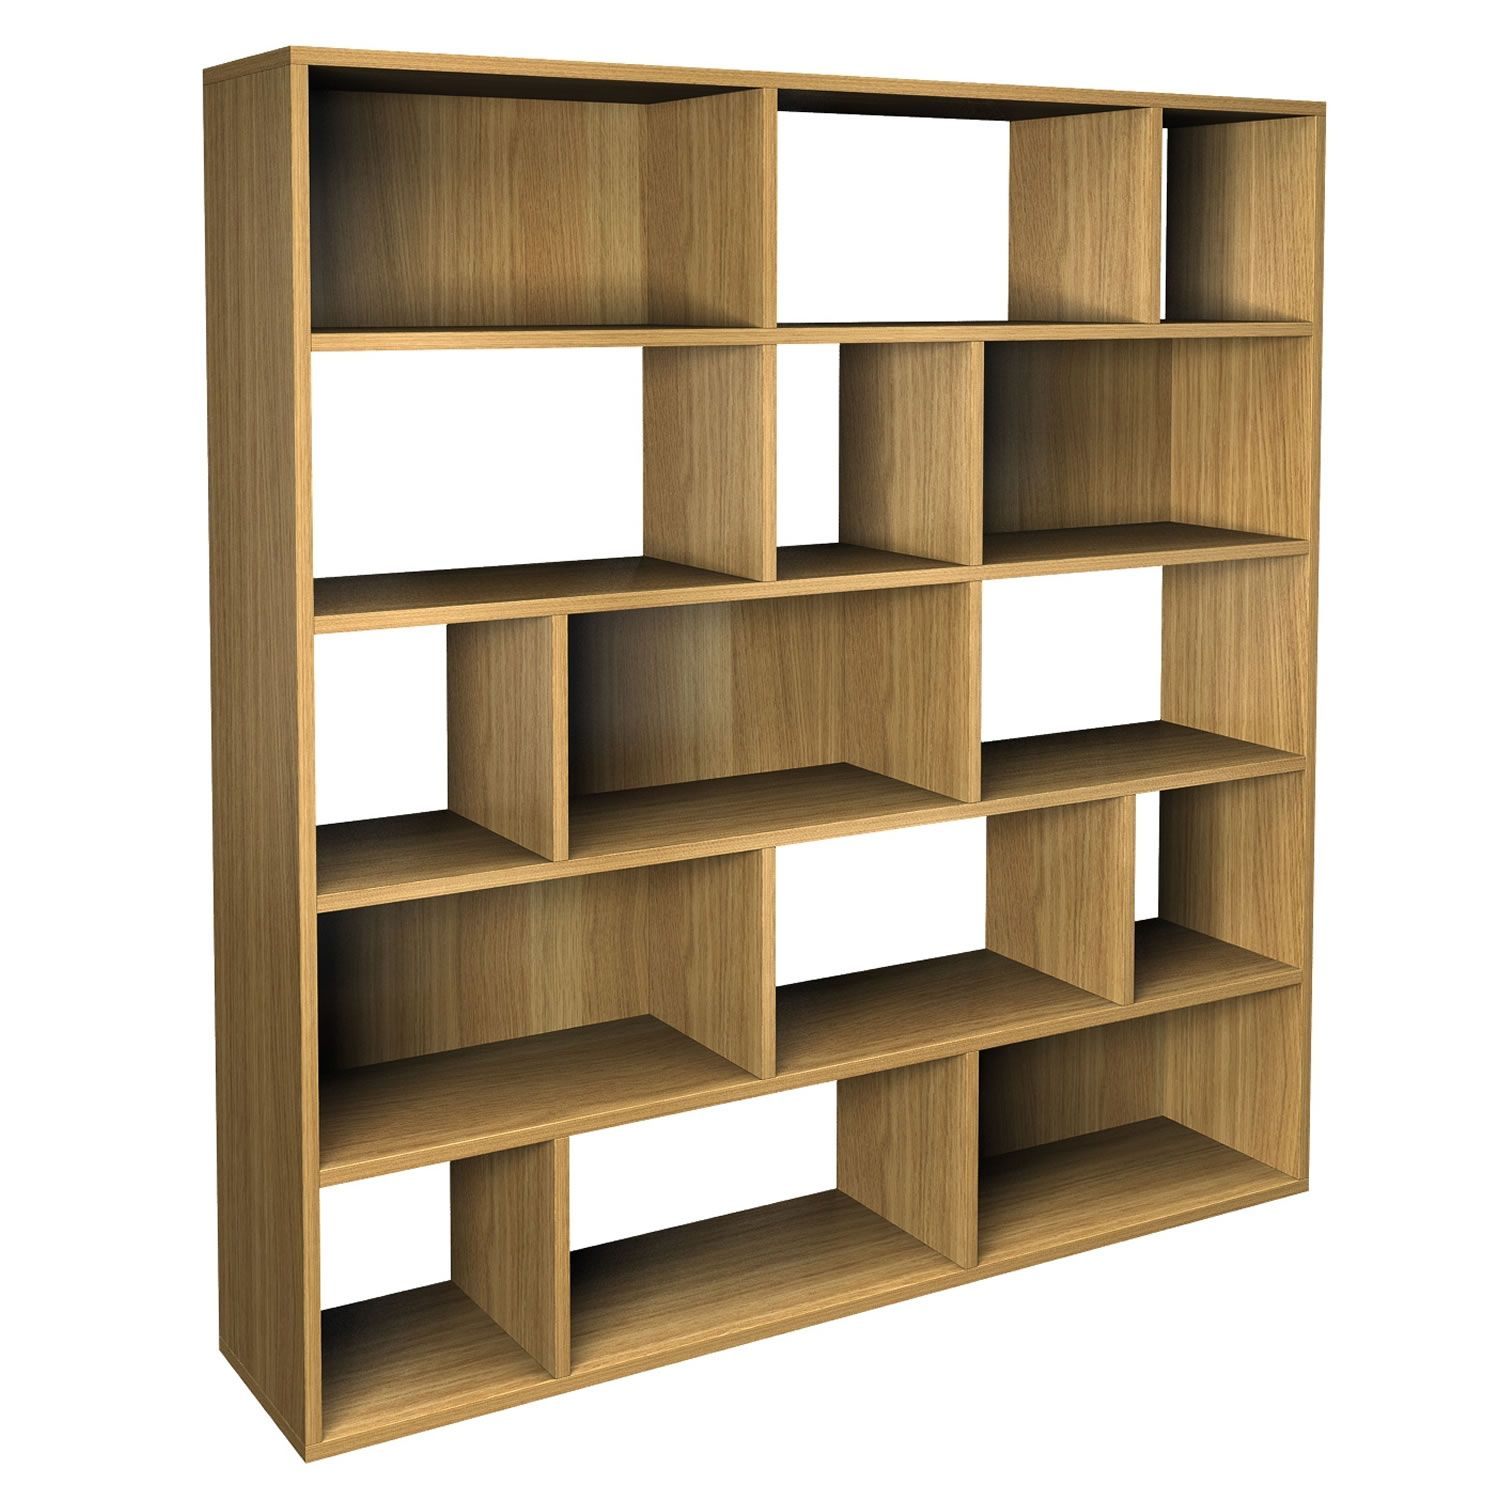 Furniture Simple Stylish Designs Pictures Of Creative Bookshelf